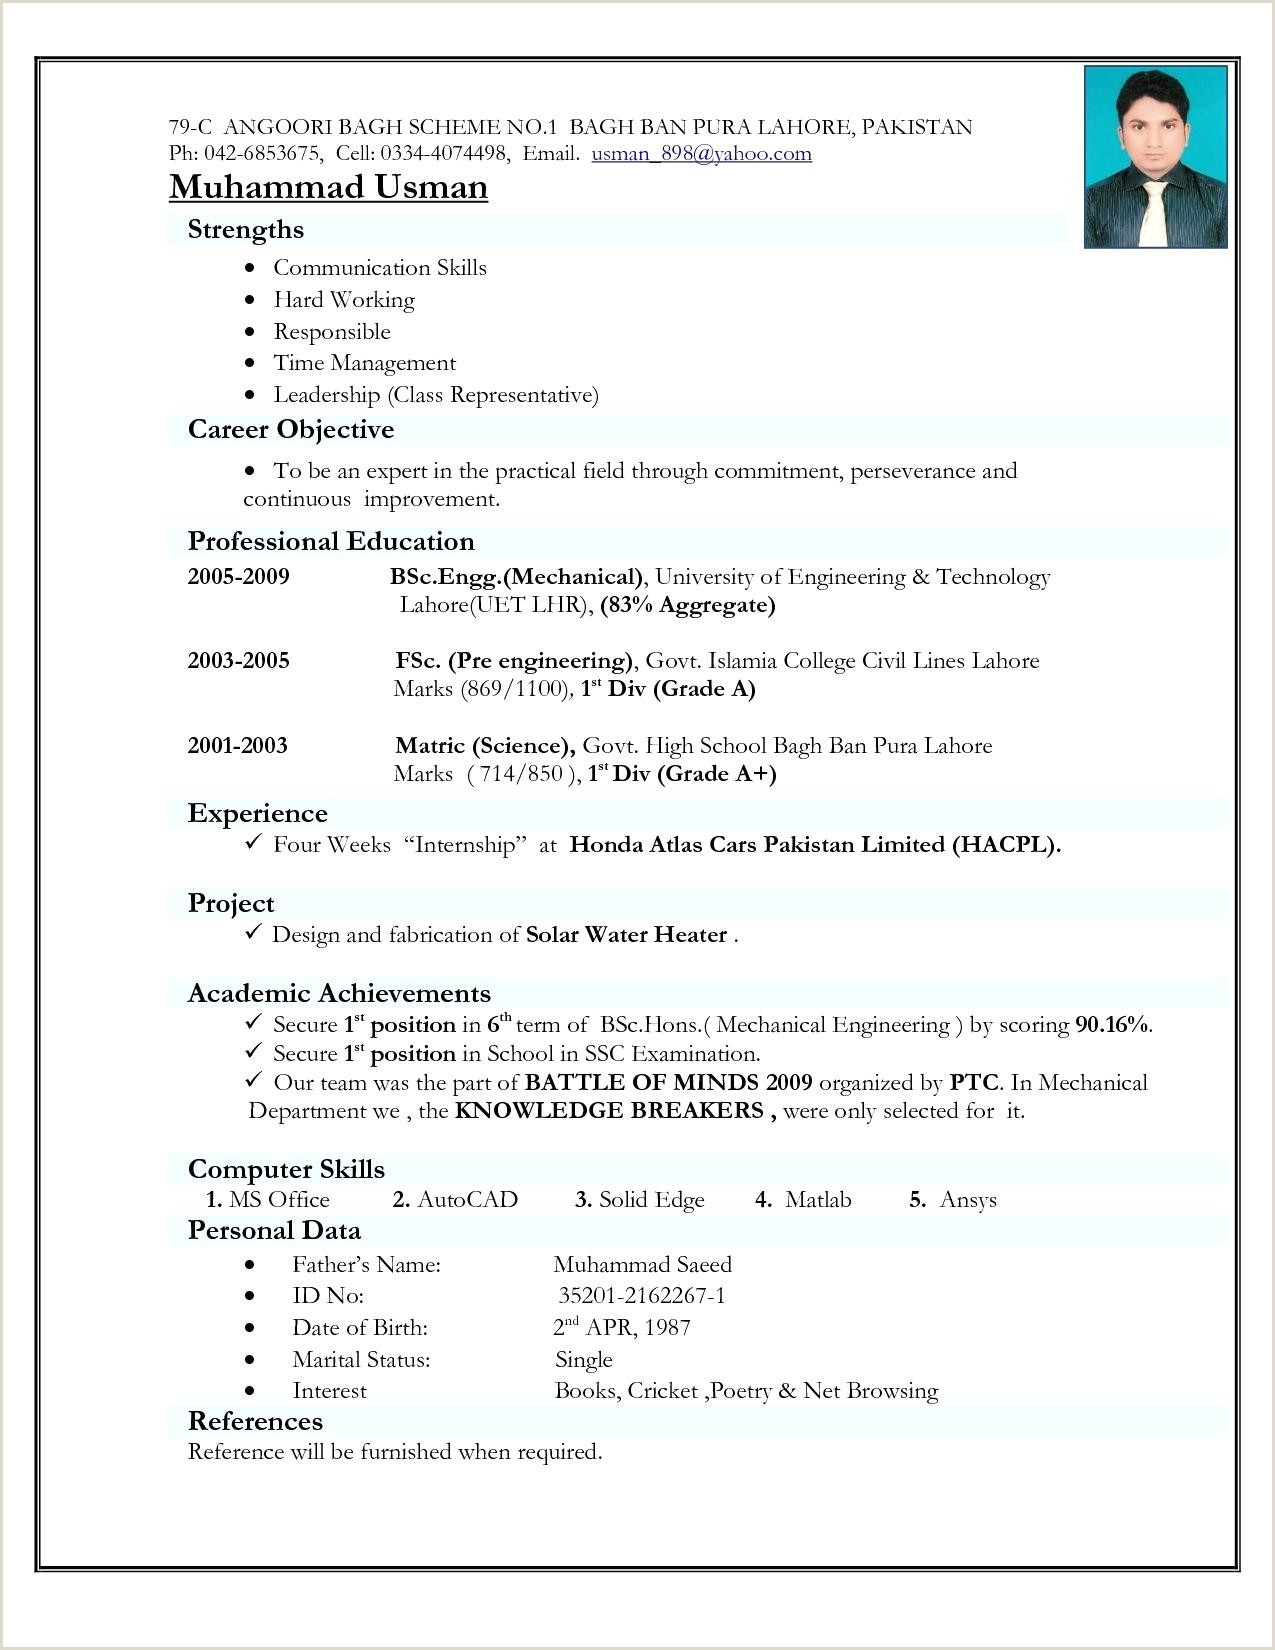 Fresher Resume format Pdf File Awesome format Resume for Fresher Engineers Pdf